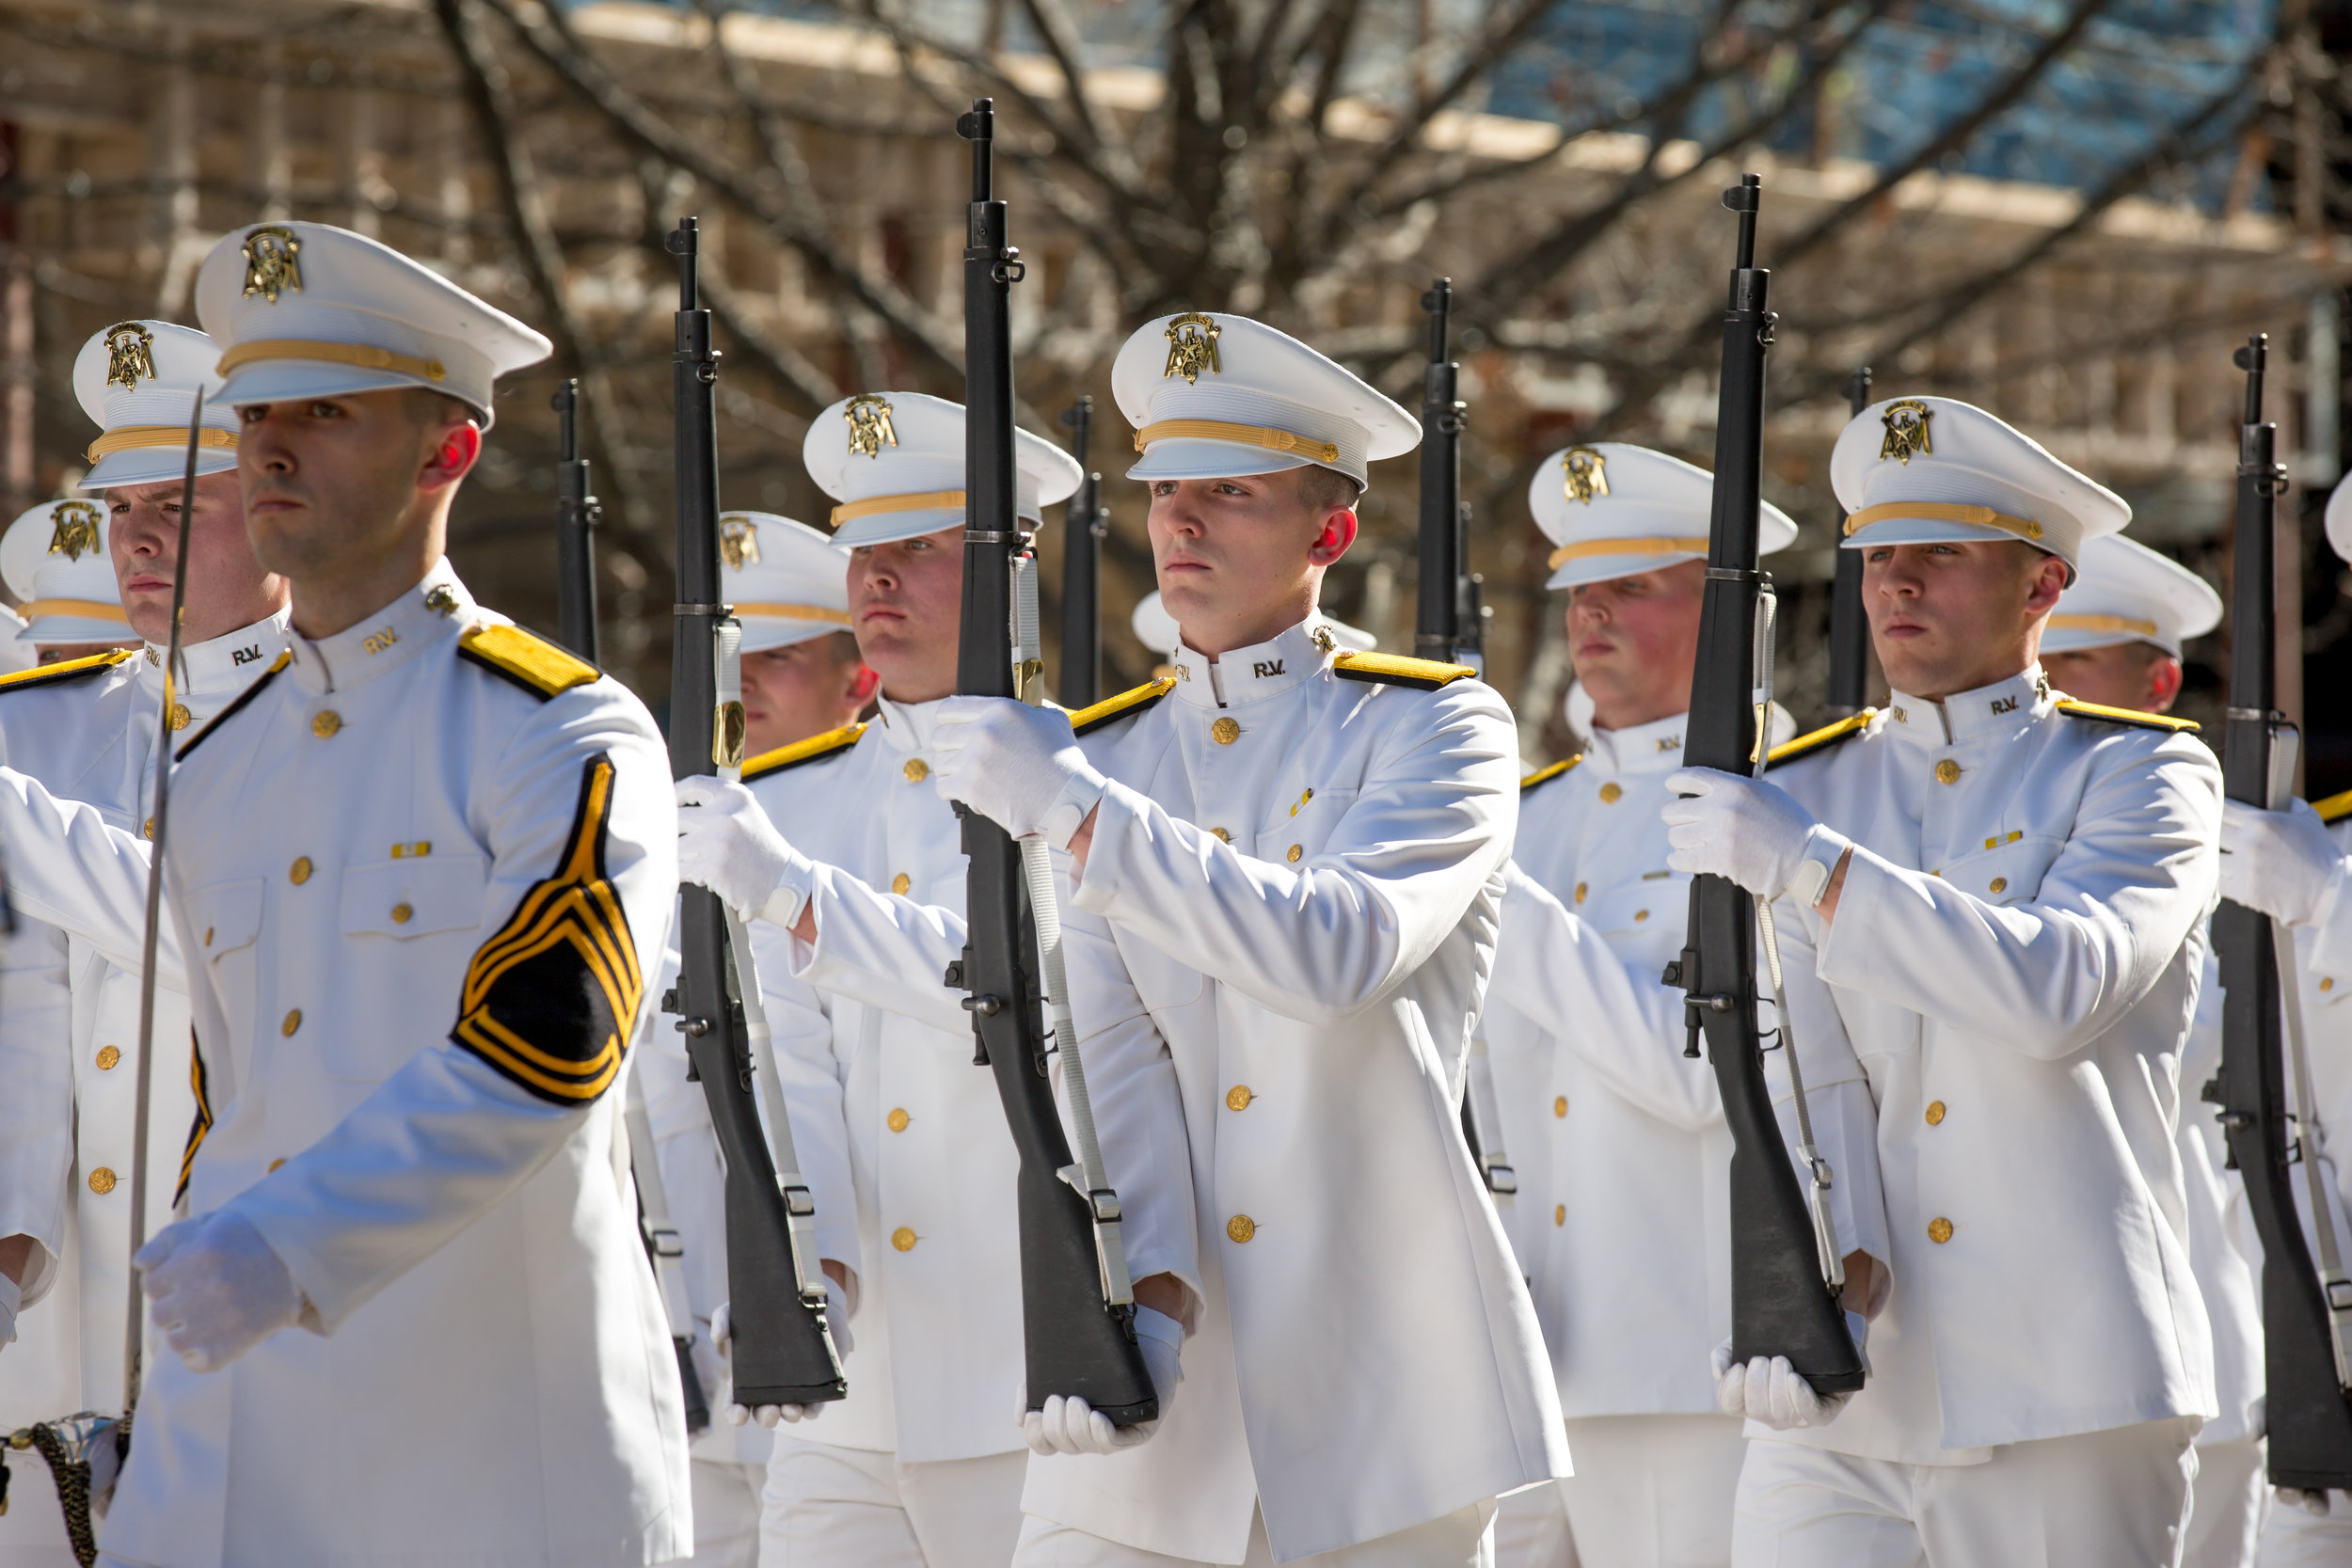 Texas Honor Guard march during Governor's Greg Abbott's inauguration.